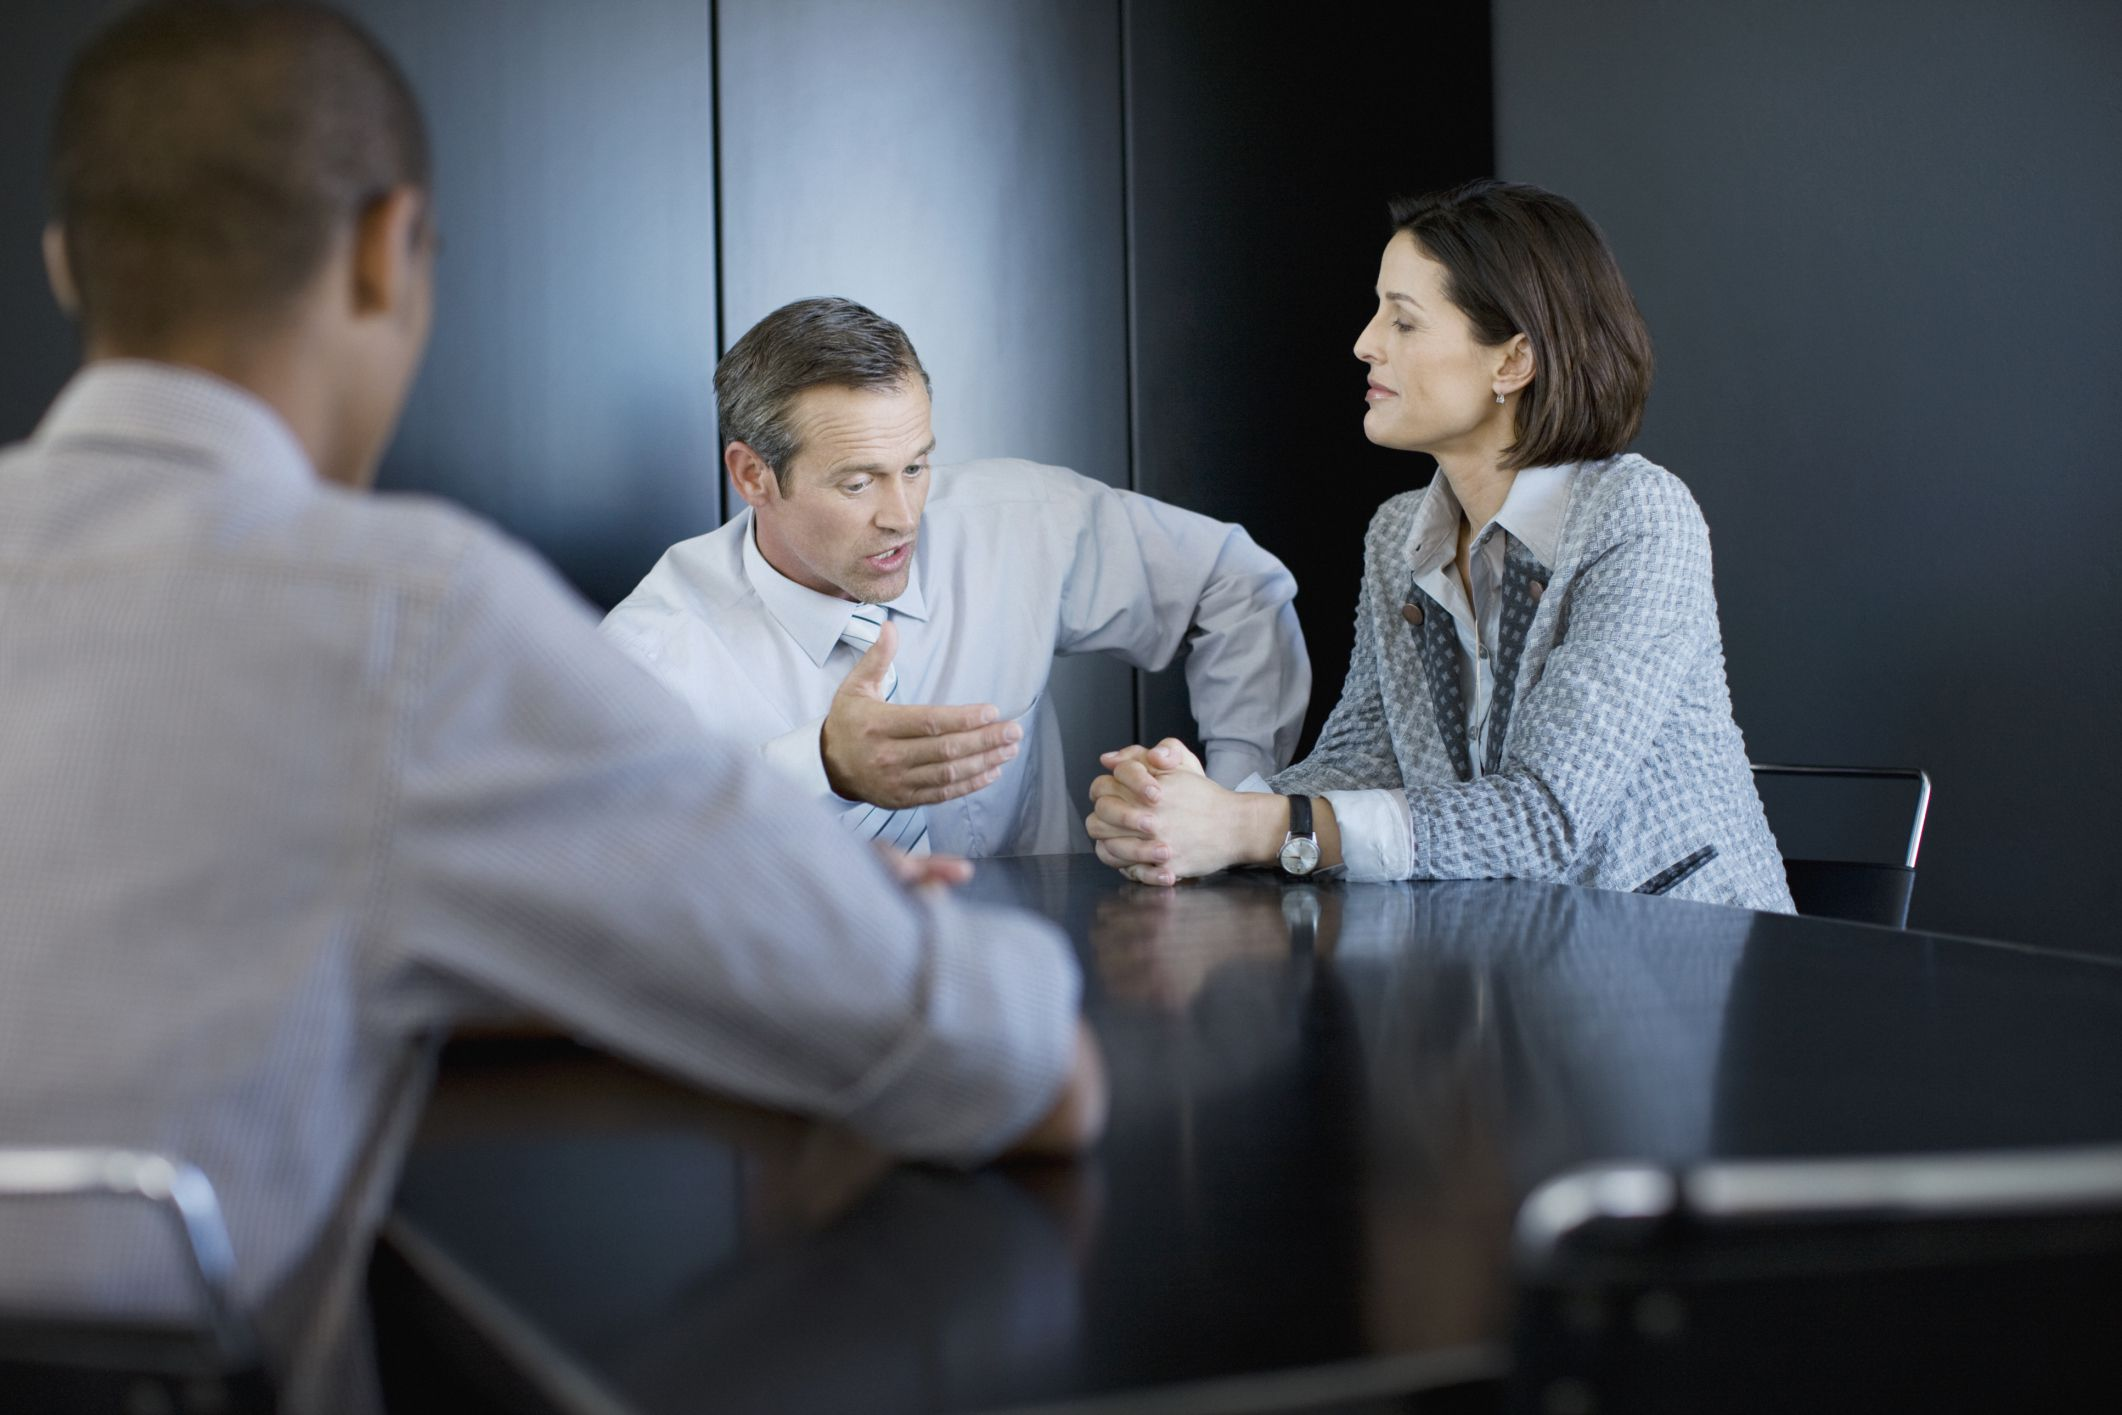 how covert conflict hinders communication How we behave during the conflict matters it matters in terms of how we make the other person feel, and whether the conflict will actually be resolved psychologist john gottman has extensively studied the communications and interactions of married couples.